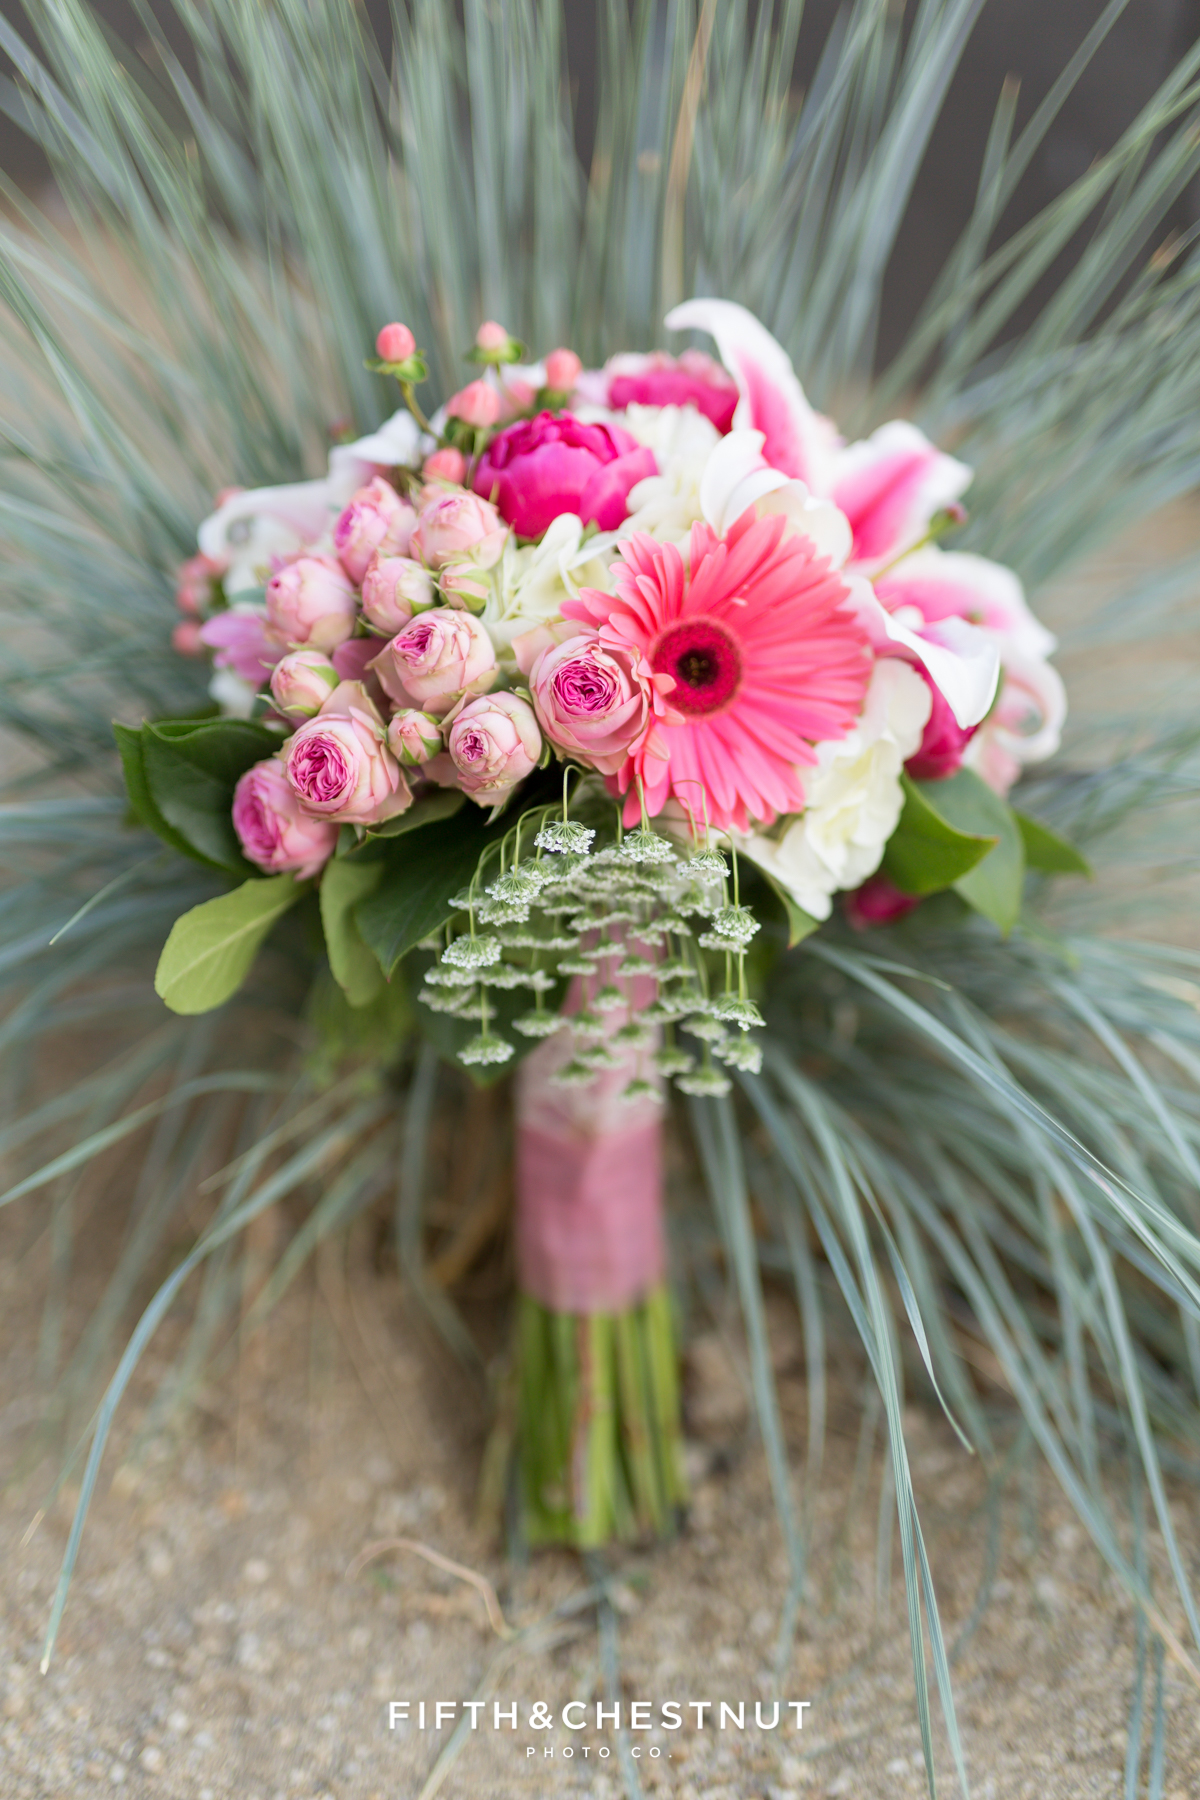 Bridal bouquet by St. Ive's Florist for a Downtown Reno elopement